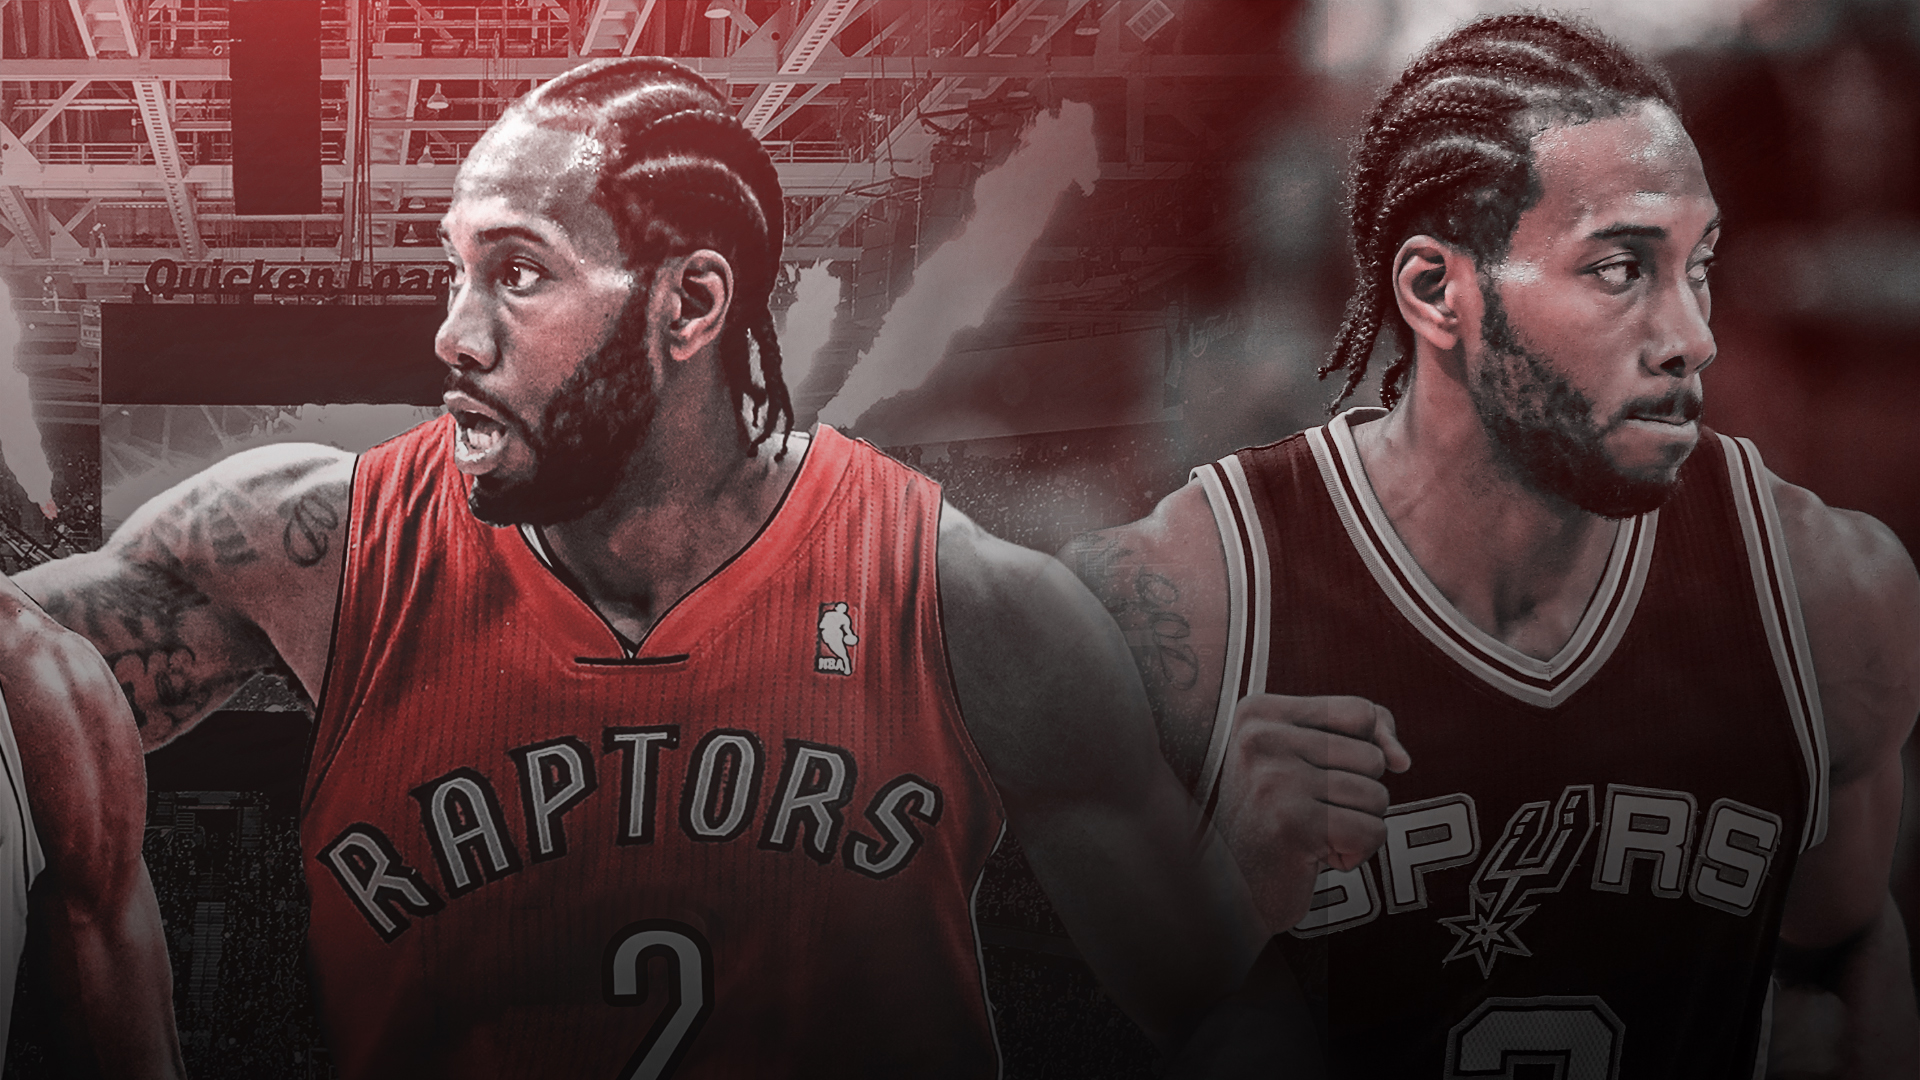 Raptors news: Date of Kawhi Leonard's return to face San Antonio Spurs